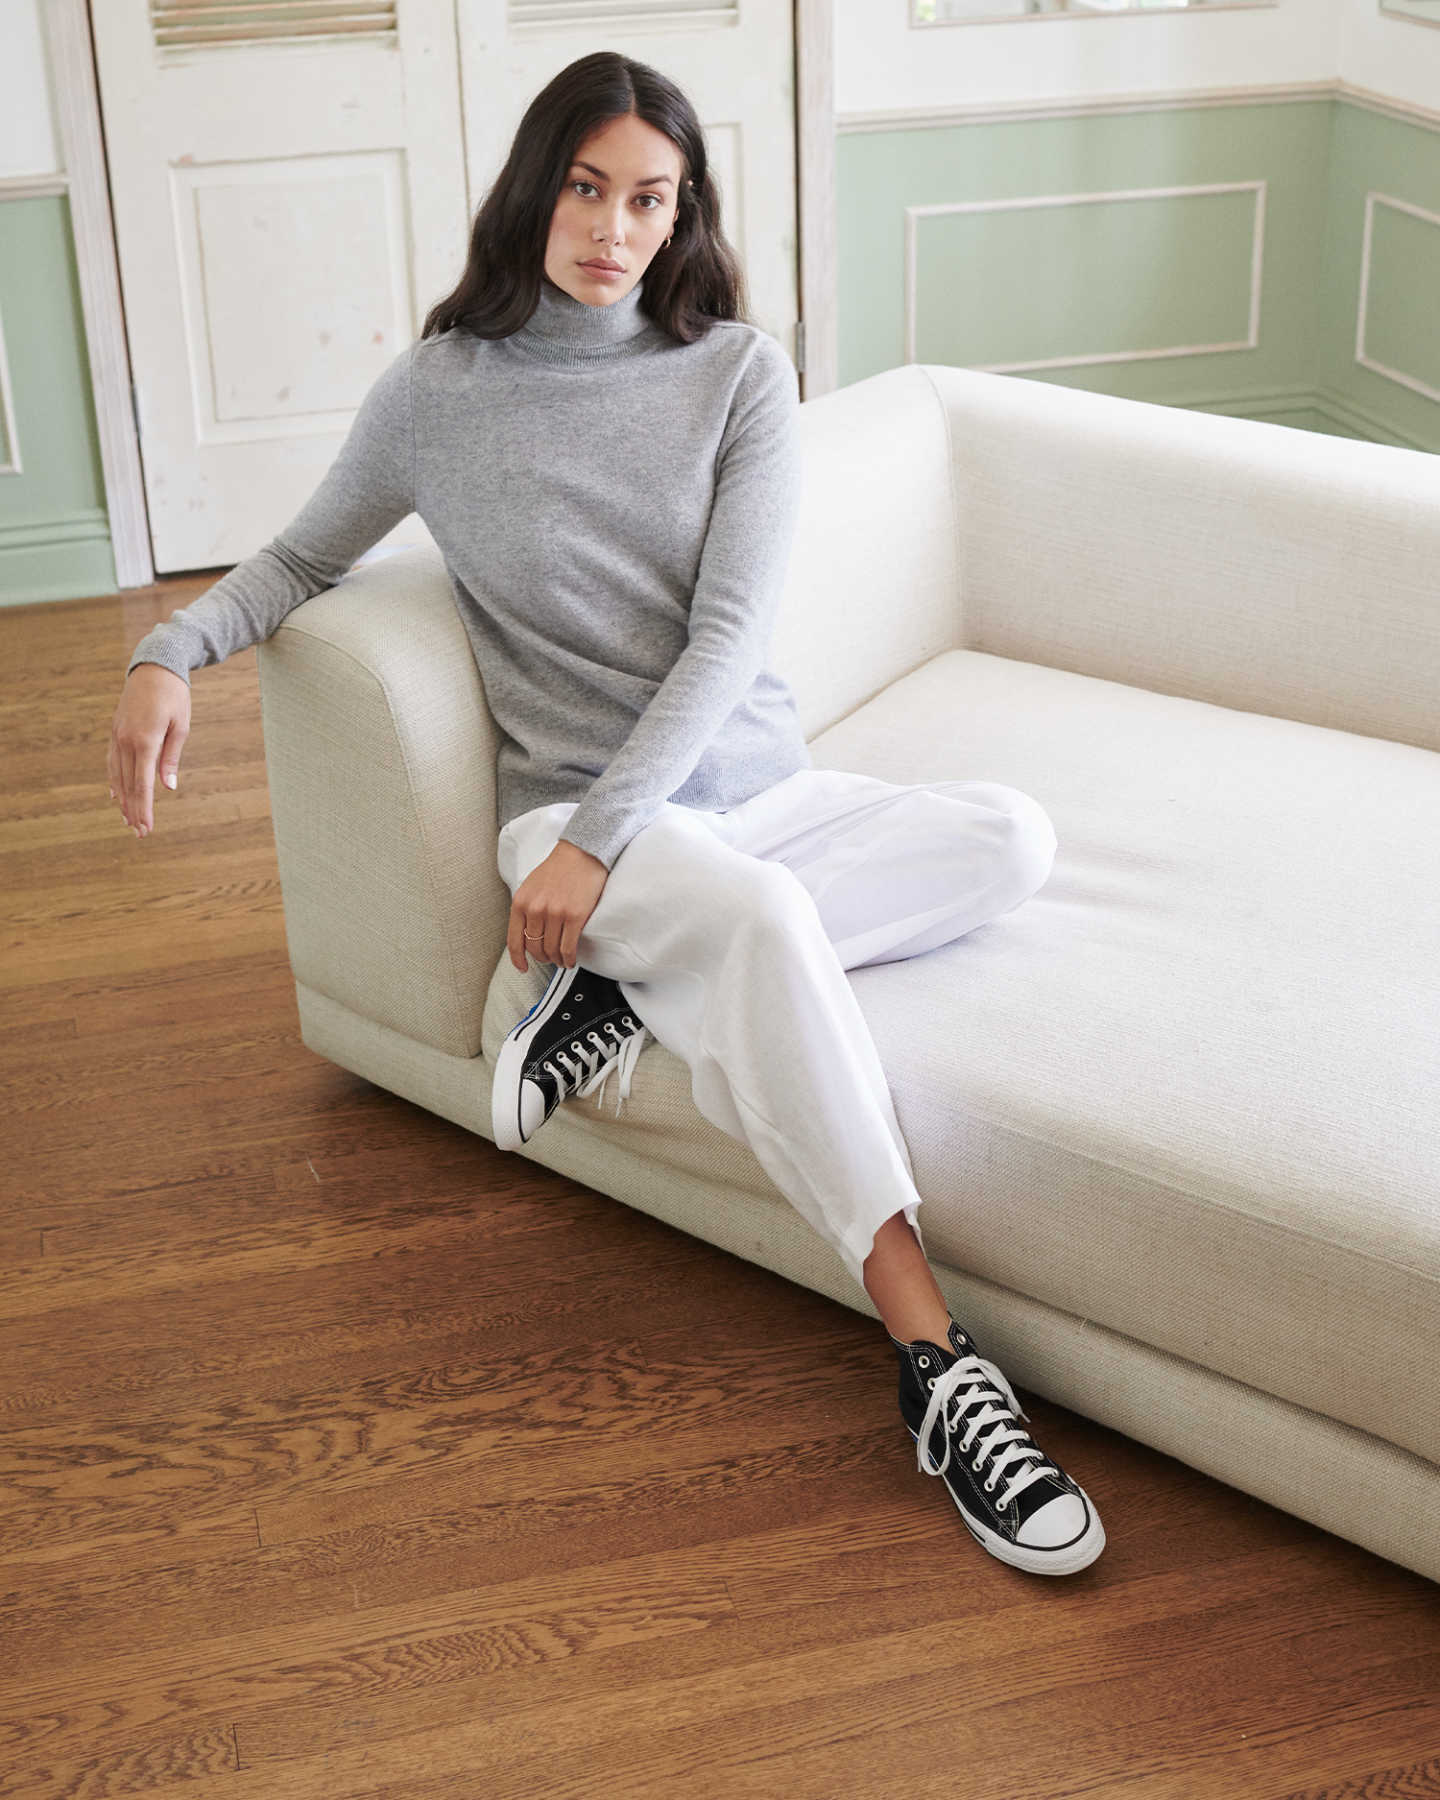 Woman wearing grey cashmere turtleneck sweater on couch